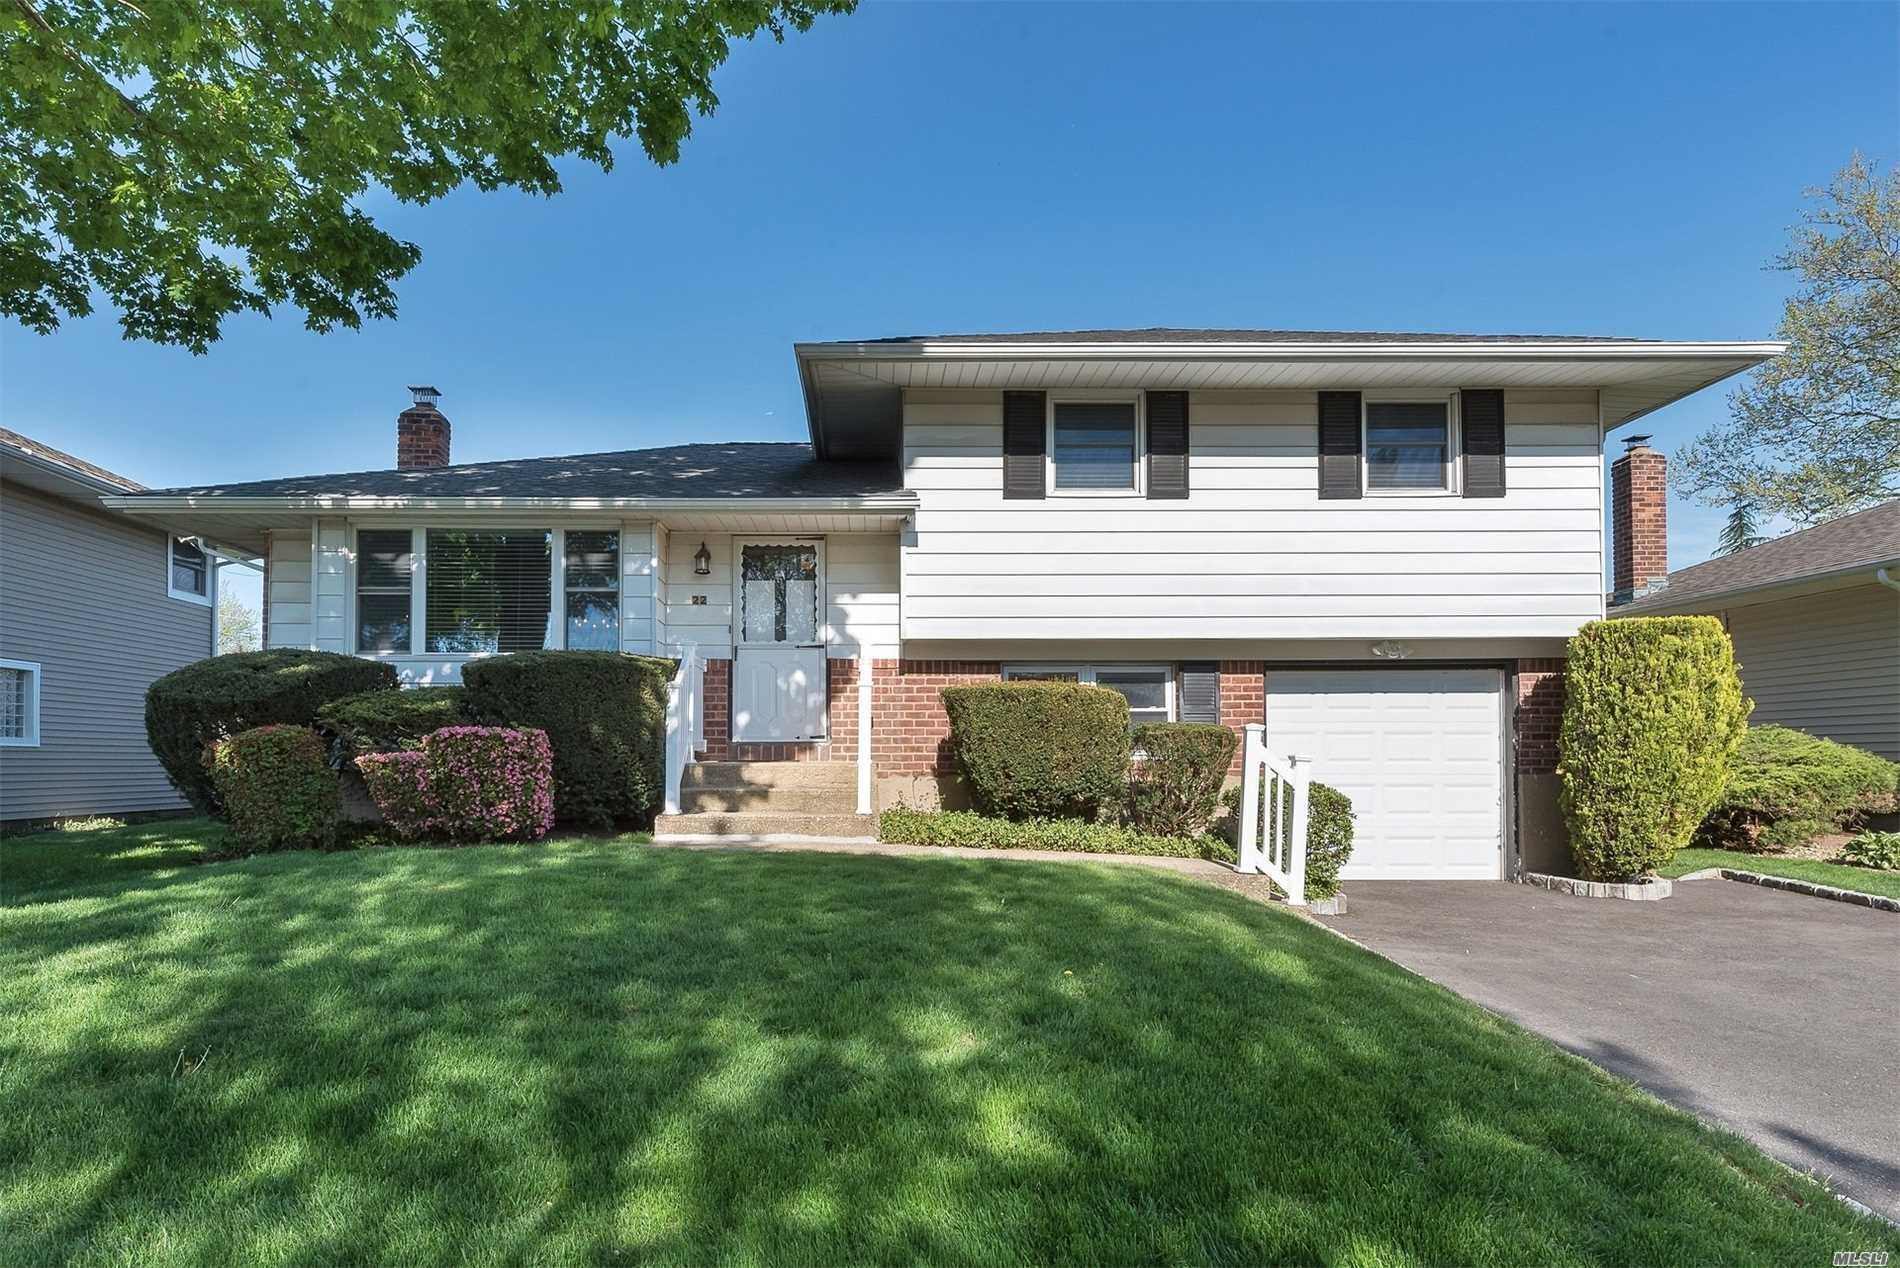 Updated Split In Pasadena Area, 4 Bedrooms, 2 Updated Full Baths, New Finished Basement With Plenty Of Storage, 200 Amp Electric Upgrade, Updated Windows, Central Air, New Patio And Driveway, Hardwood Floors, New Garage Door & Professional Manicured Yard.